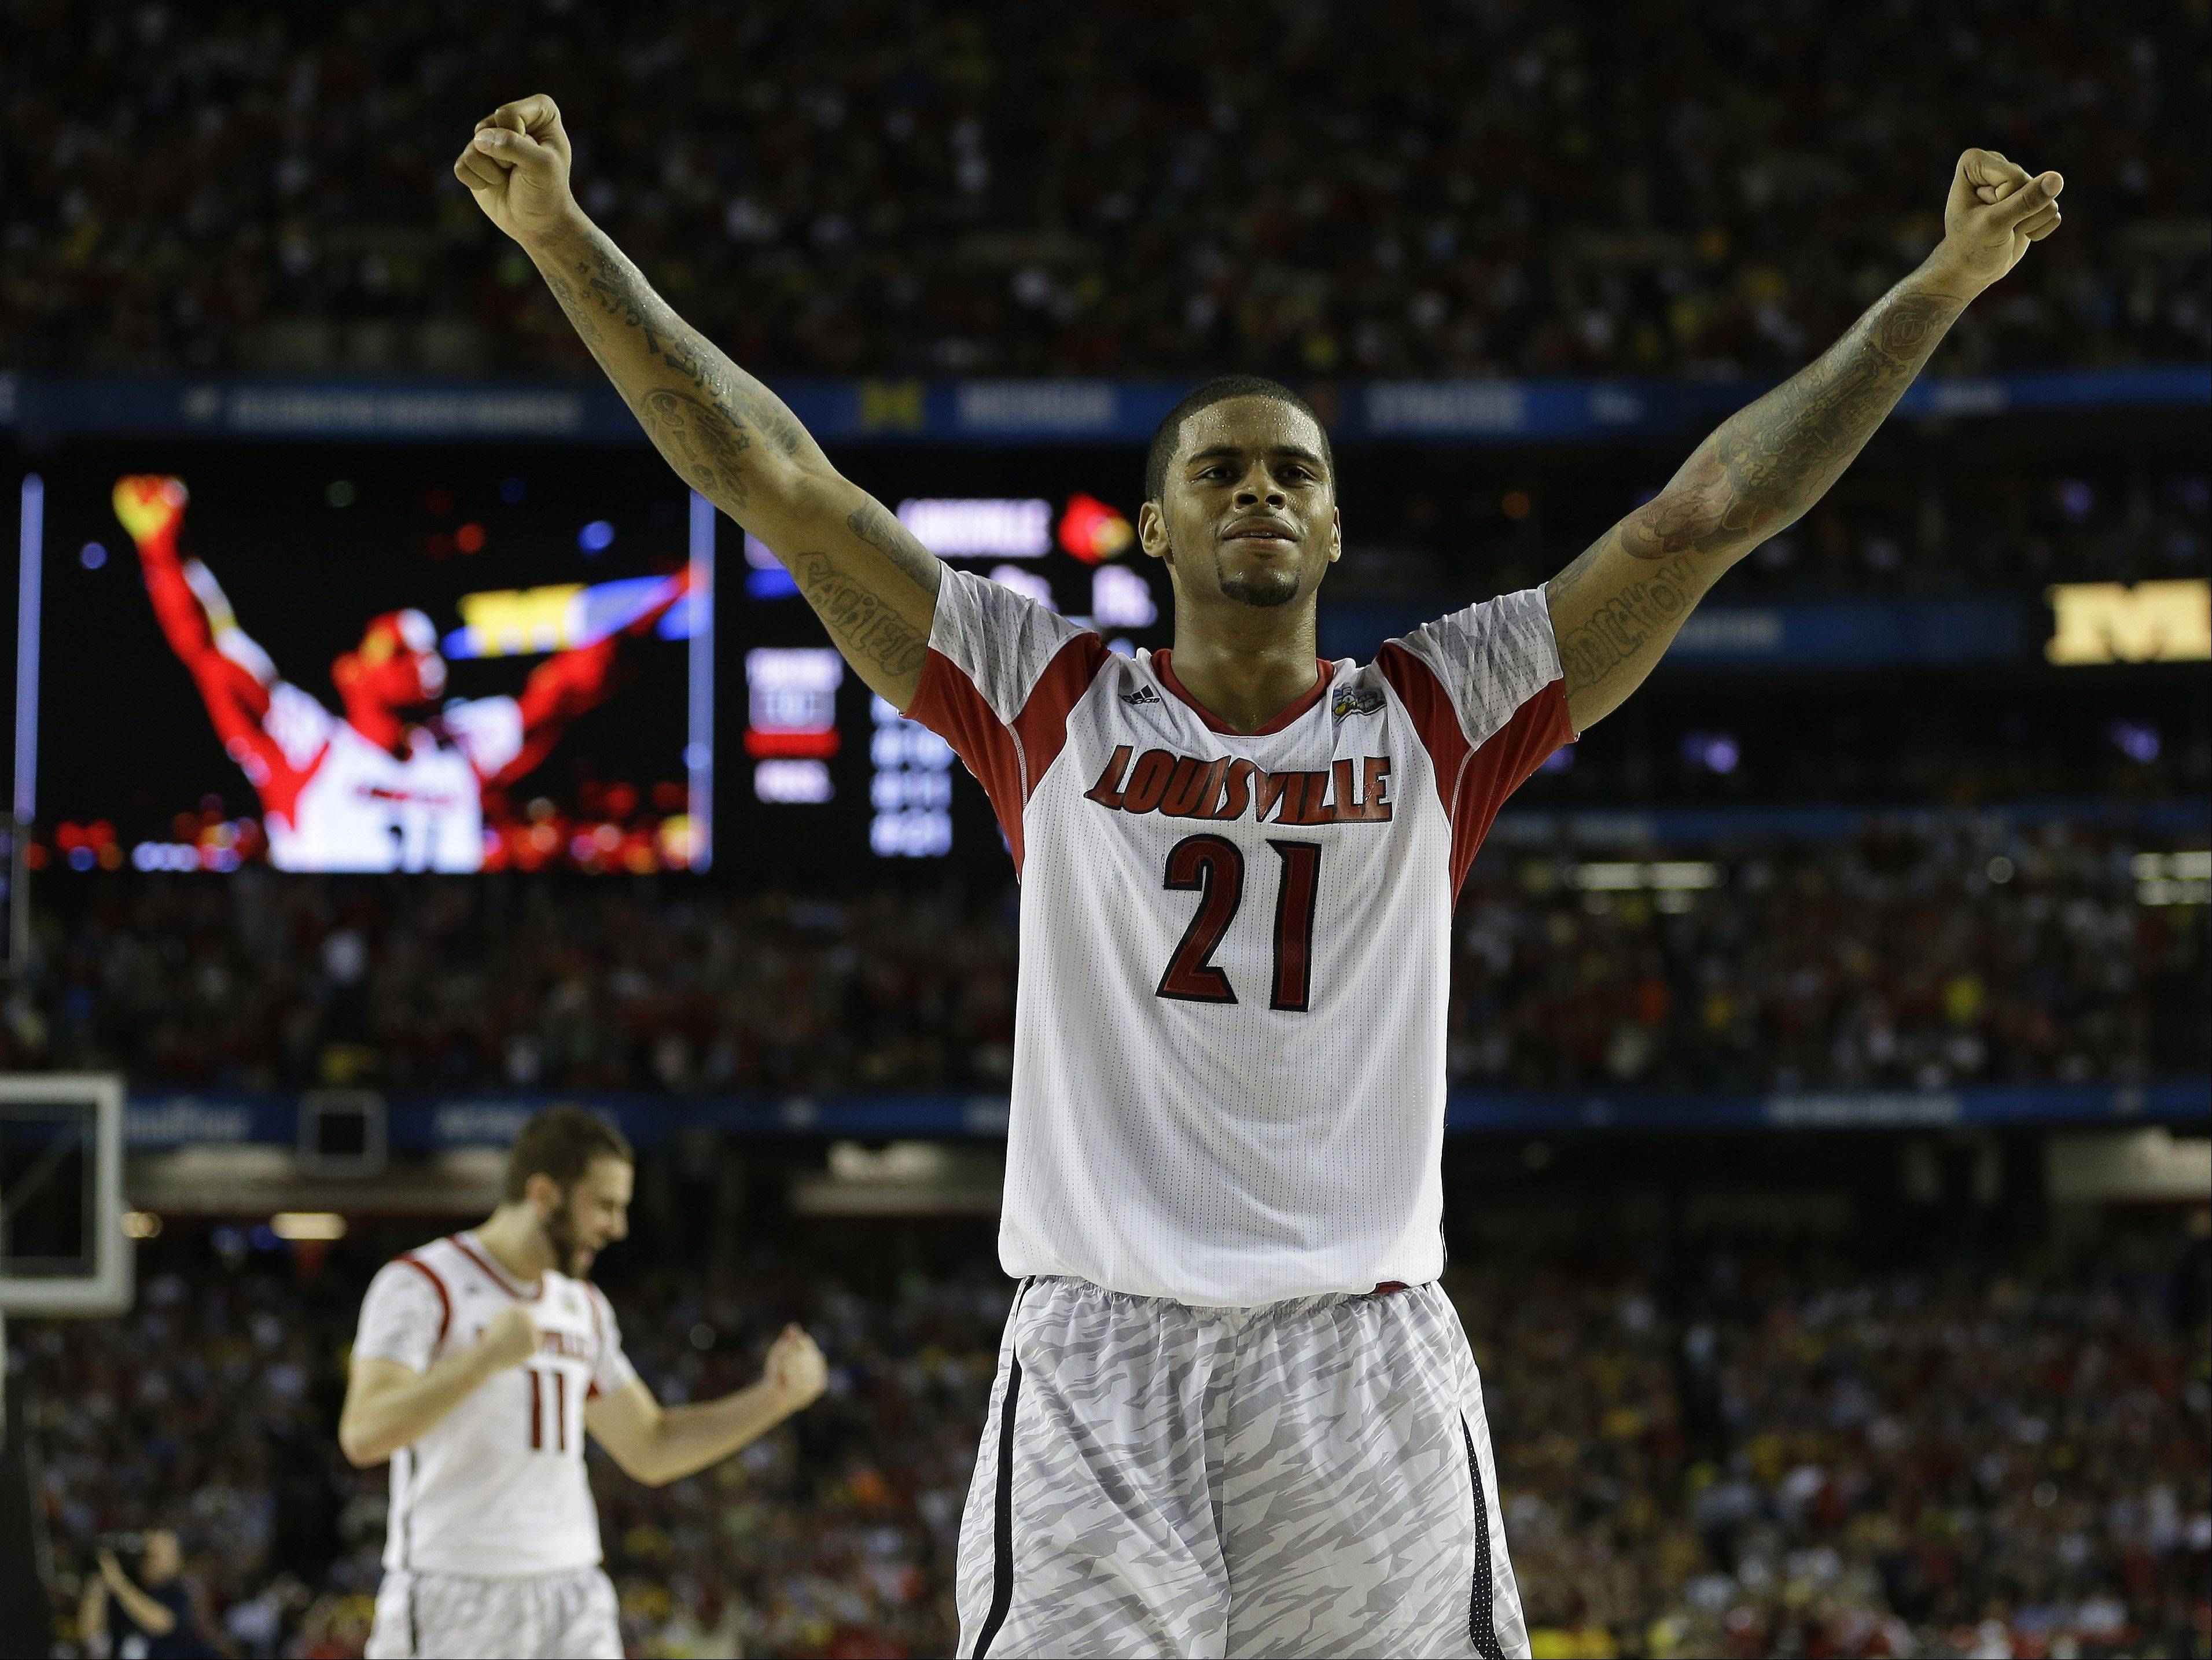 Louisville forward Chane Behanan (21) reacts after defeating Michigan after the second half of the NCAA Final Four tournament college basketball championship game Monday, April 8, 2013, in Atlanta. Louisville won 82-76.